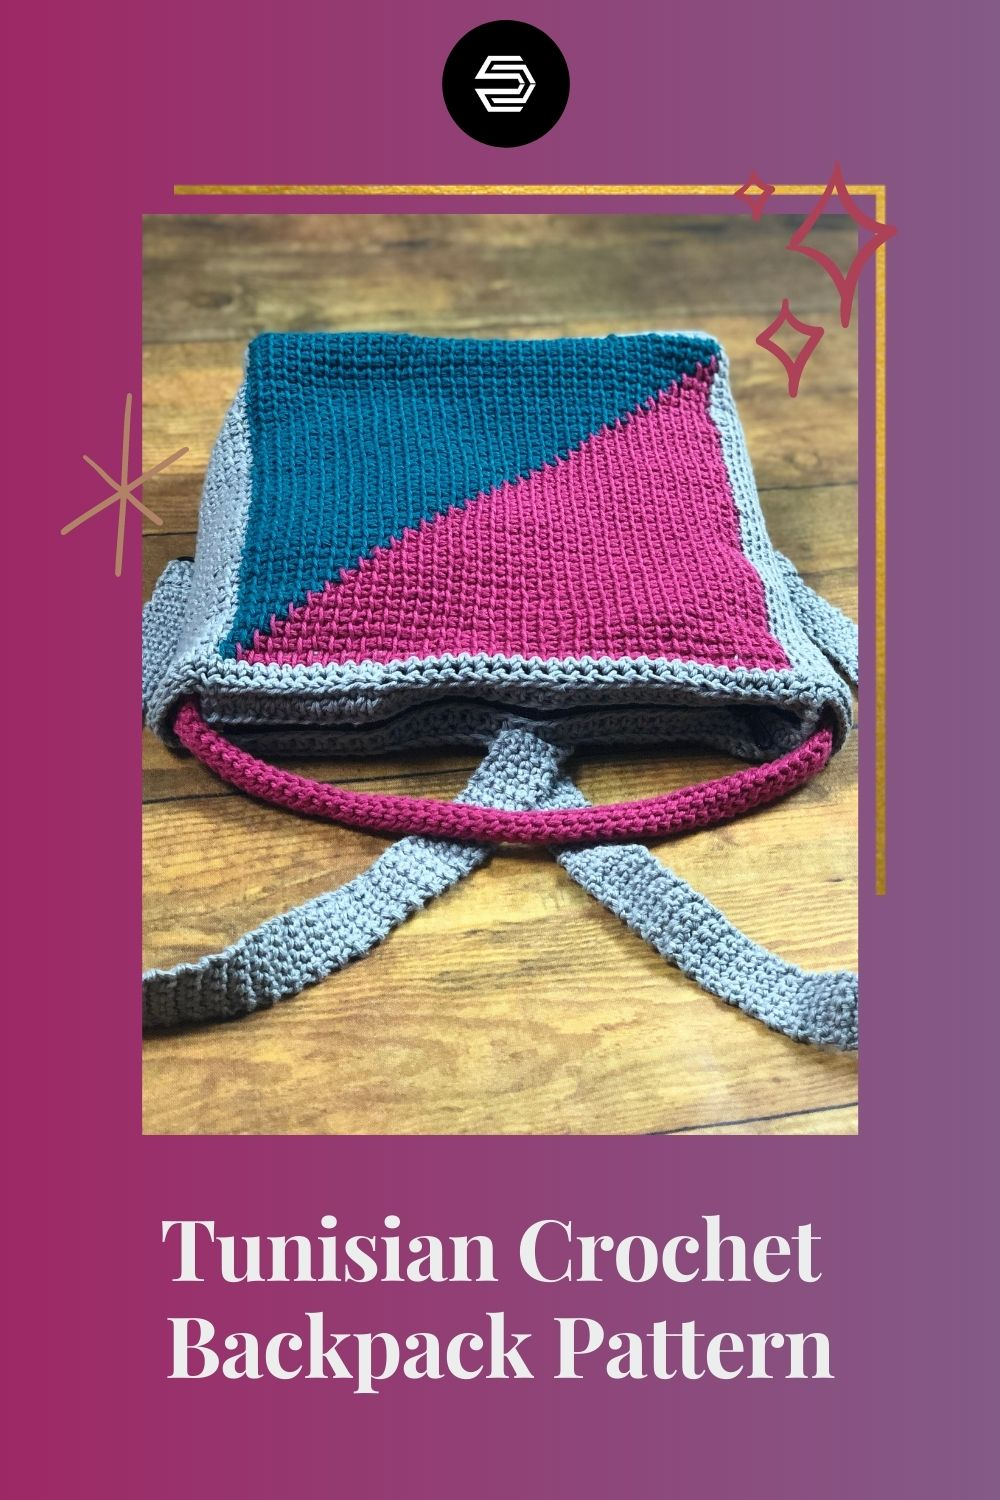 Learn how to create a tunisian crochet backpack with a neat color change. You will also learn how to seam the sides as you create the body of the bag. Grab 150 yards of three worsted weight yarns to make a stylish medium sized bag.